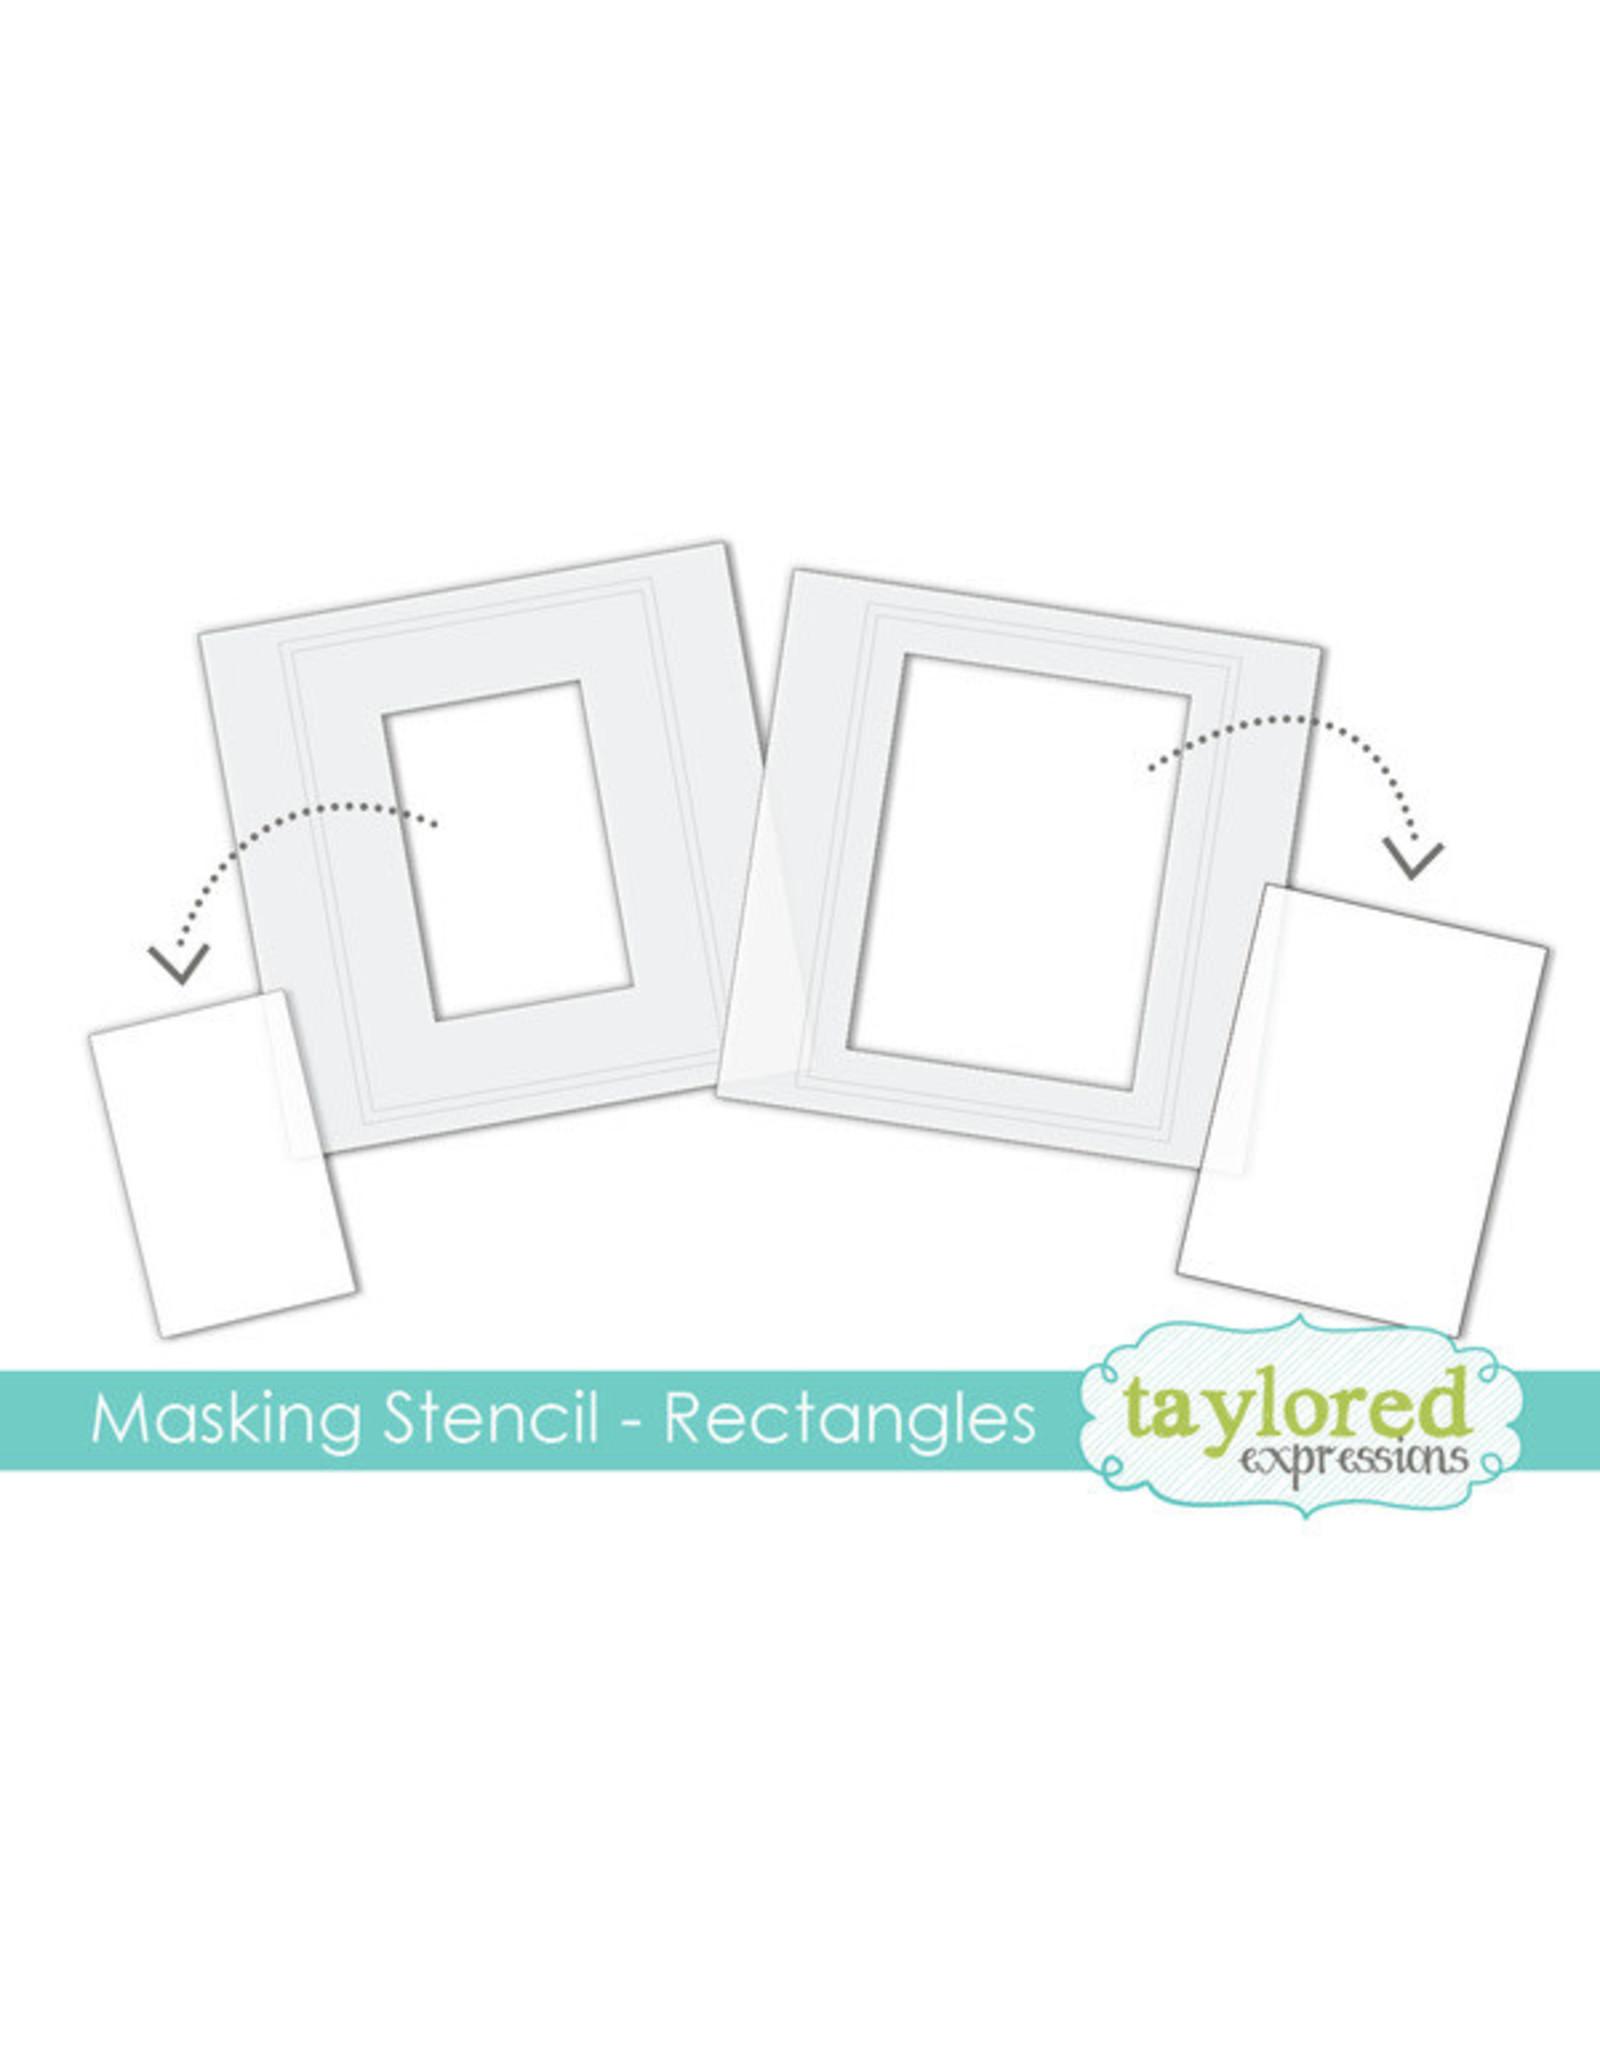 Taylored Expressions Rectangles - 6x6 Designer Masking Stencil